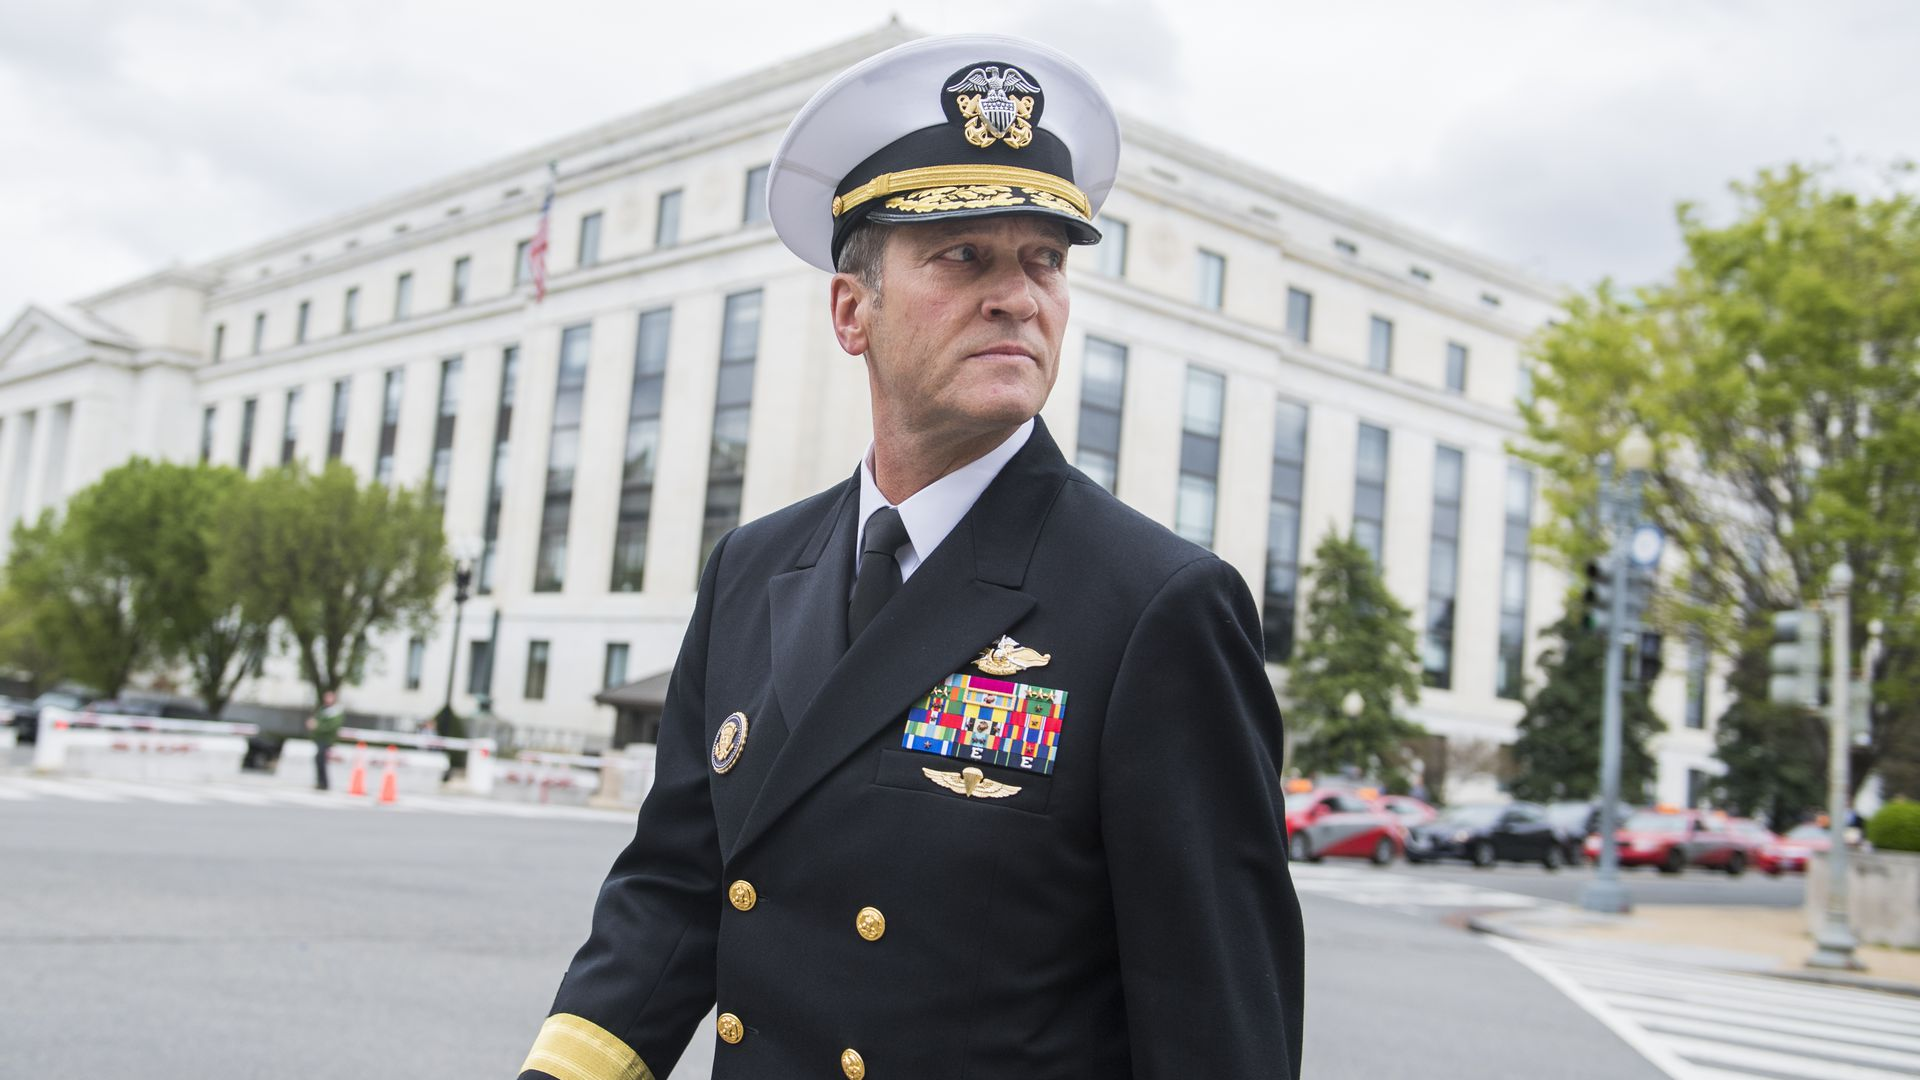 Rear Adm. Ronny Jackson, nominee for Veterans Affairs secretary, leaves Dirksen Building after a meeting on Capitol Hill.